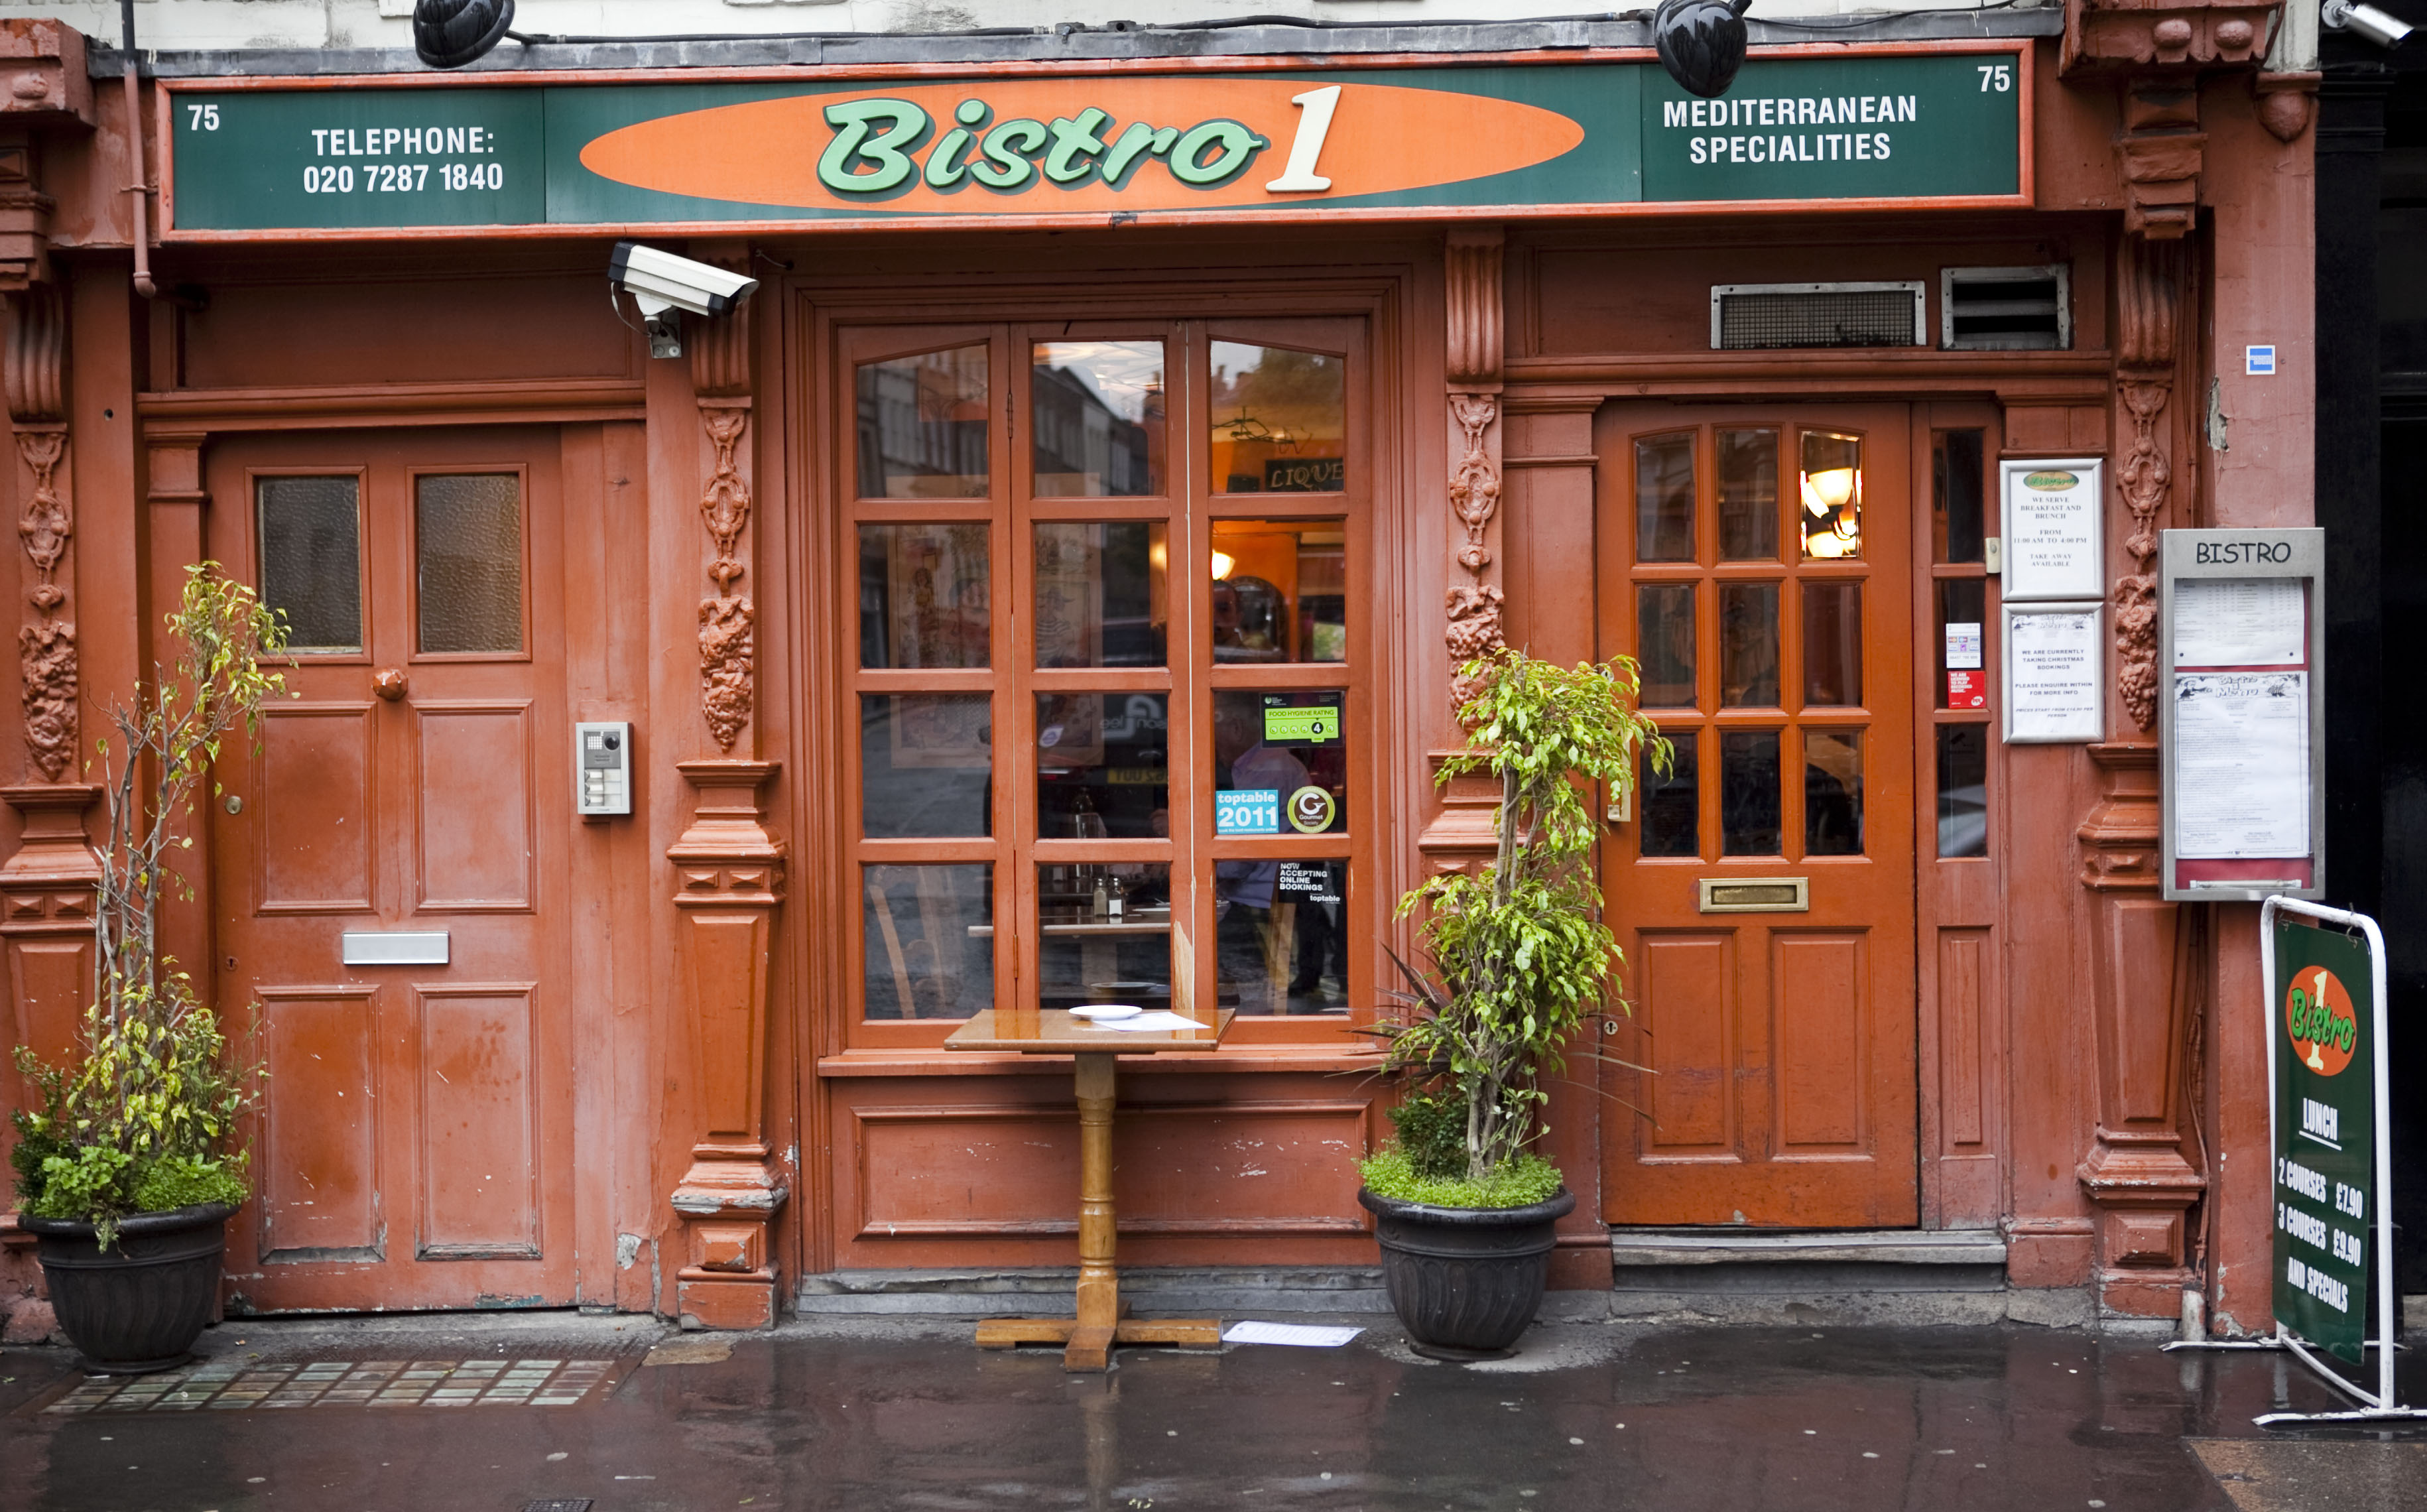 Reserve a table at Bistro 1 - Beak Street